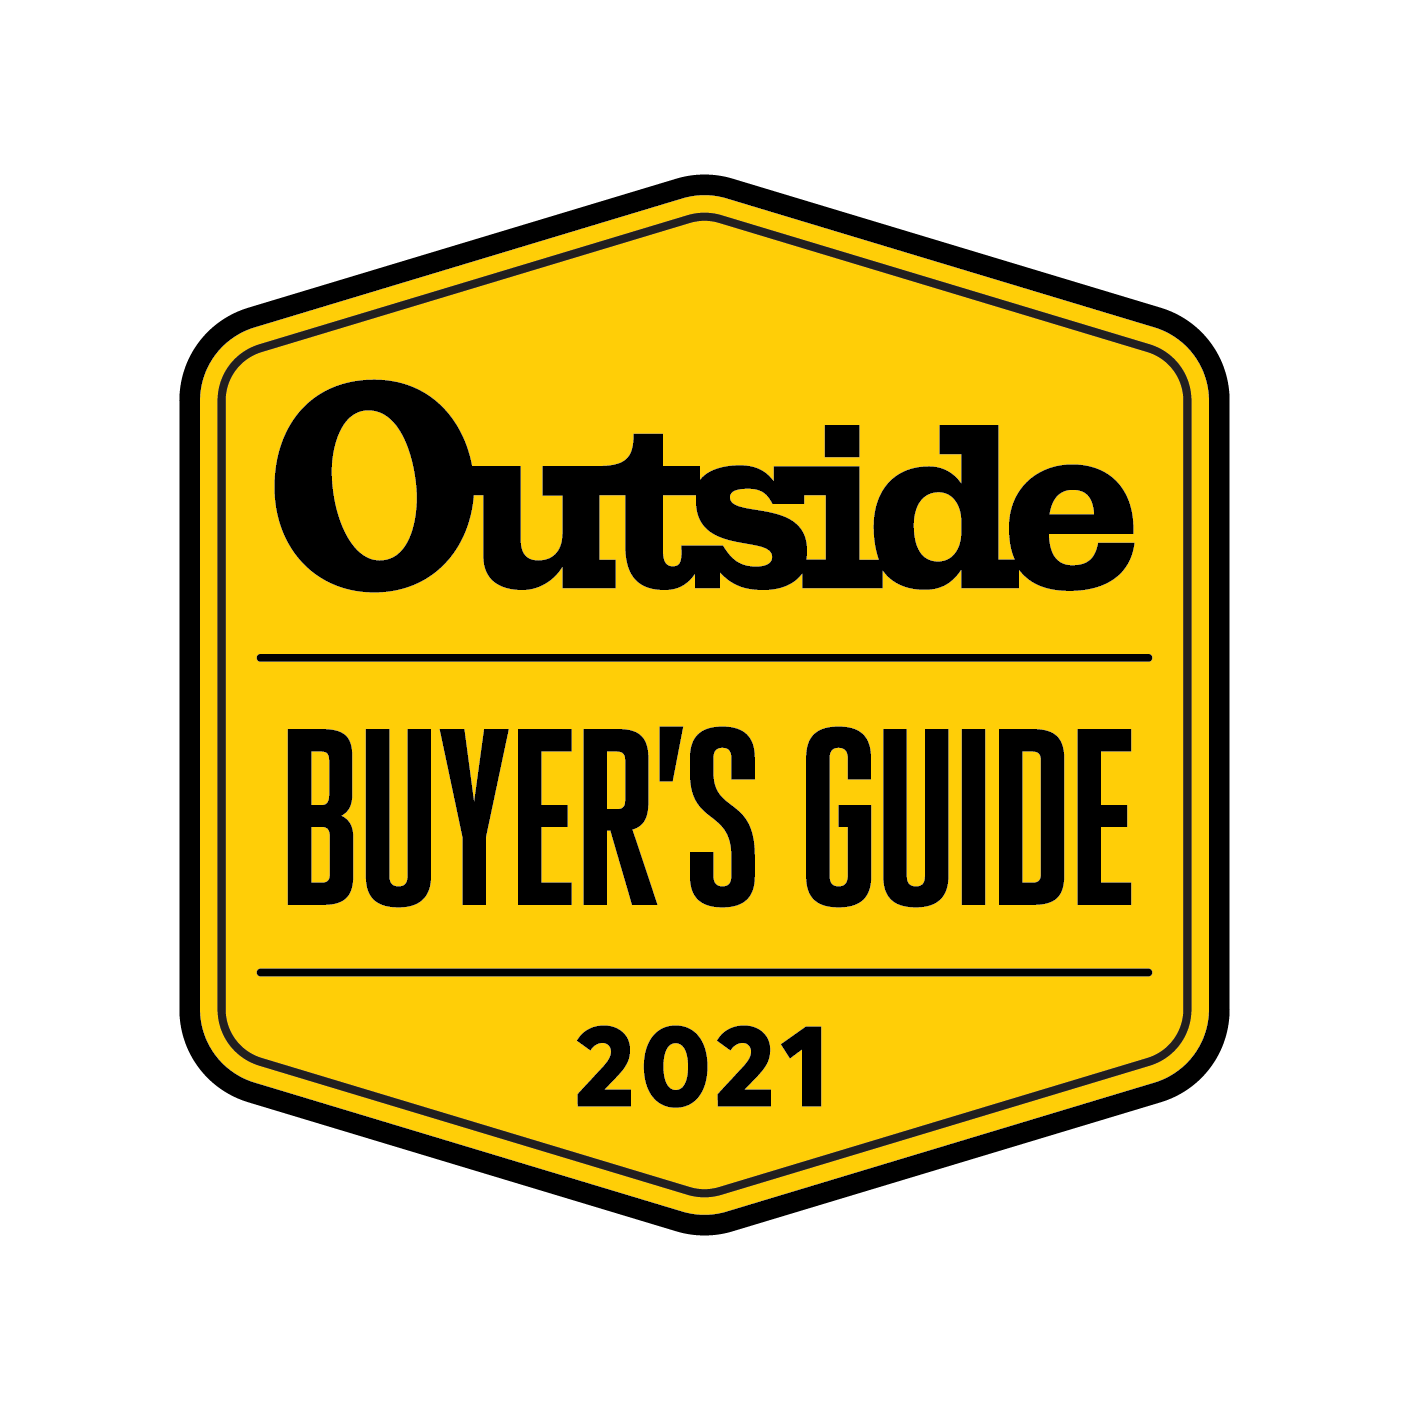 This shoe has recieved the Outside Buyers Guide Award